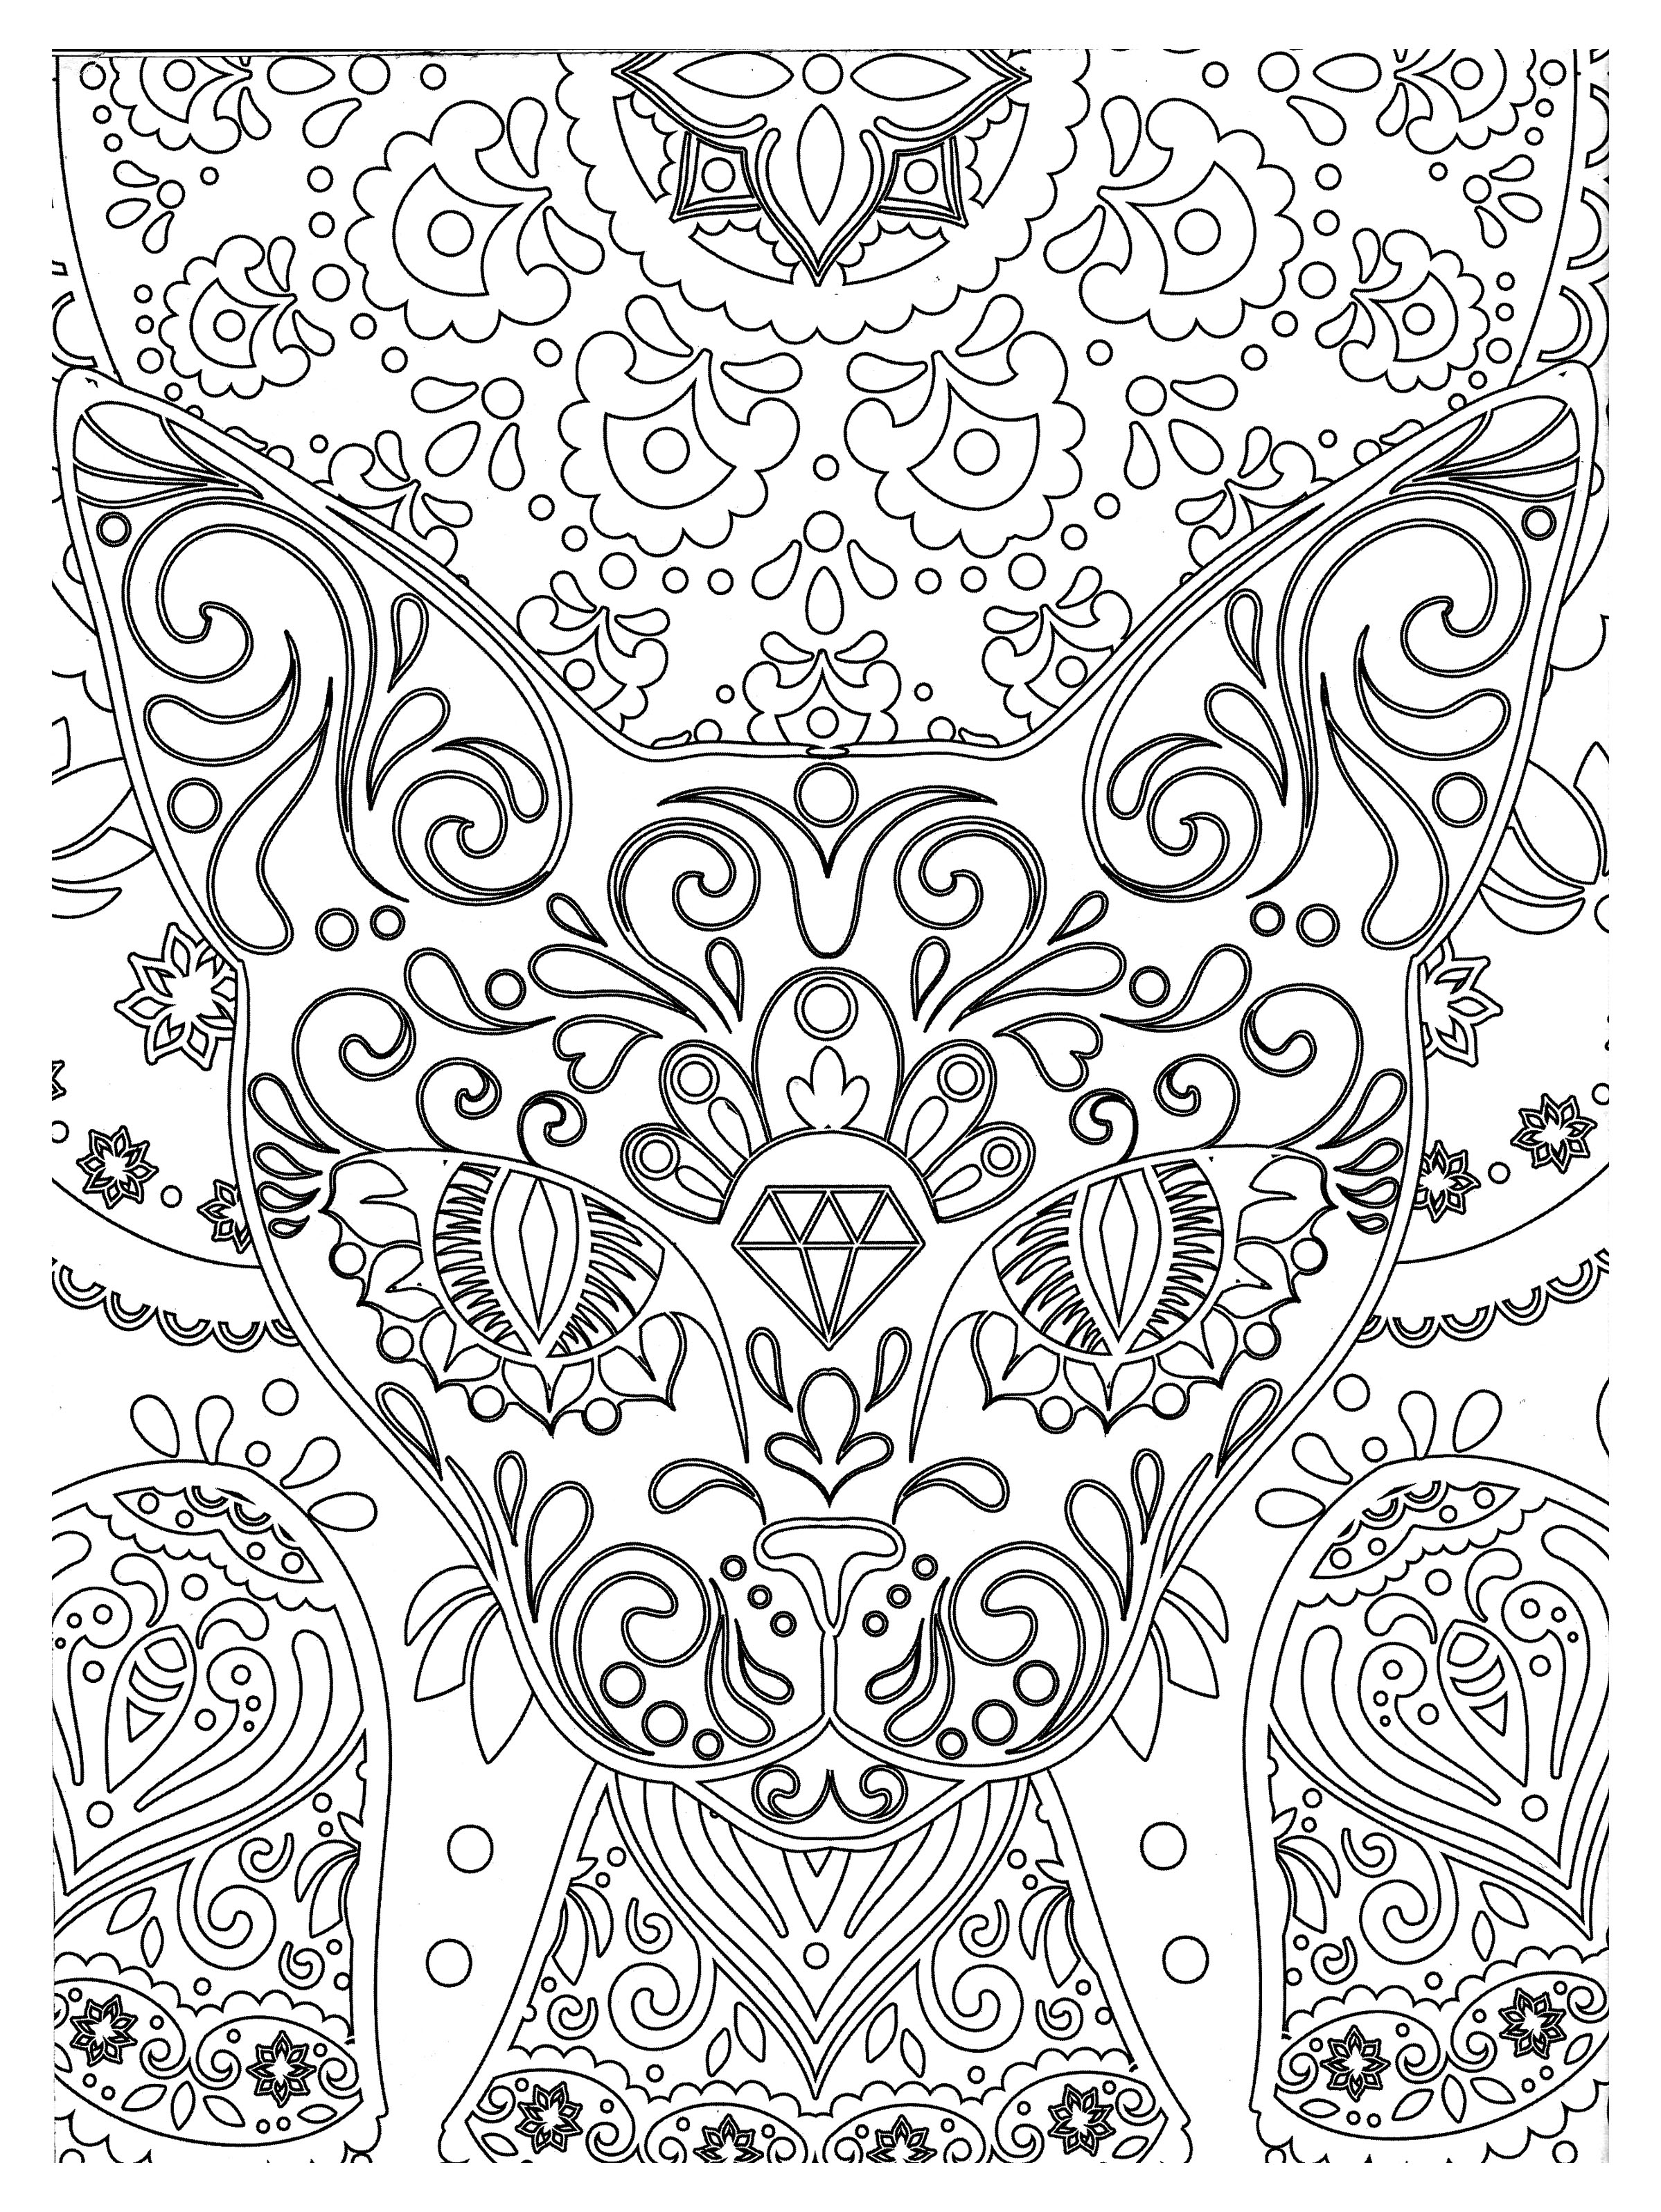 Animals - Coloring pages for adults : coloring-zen ...